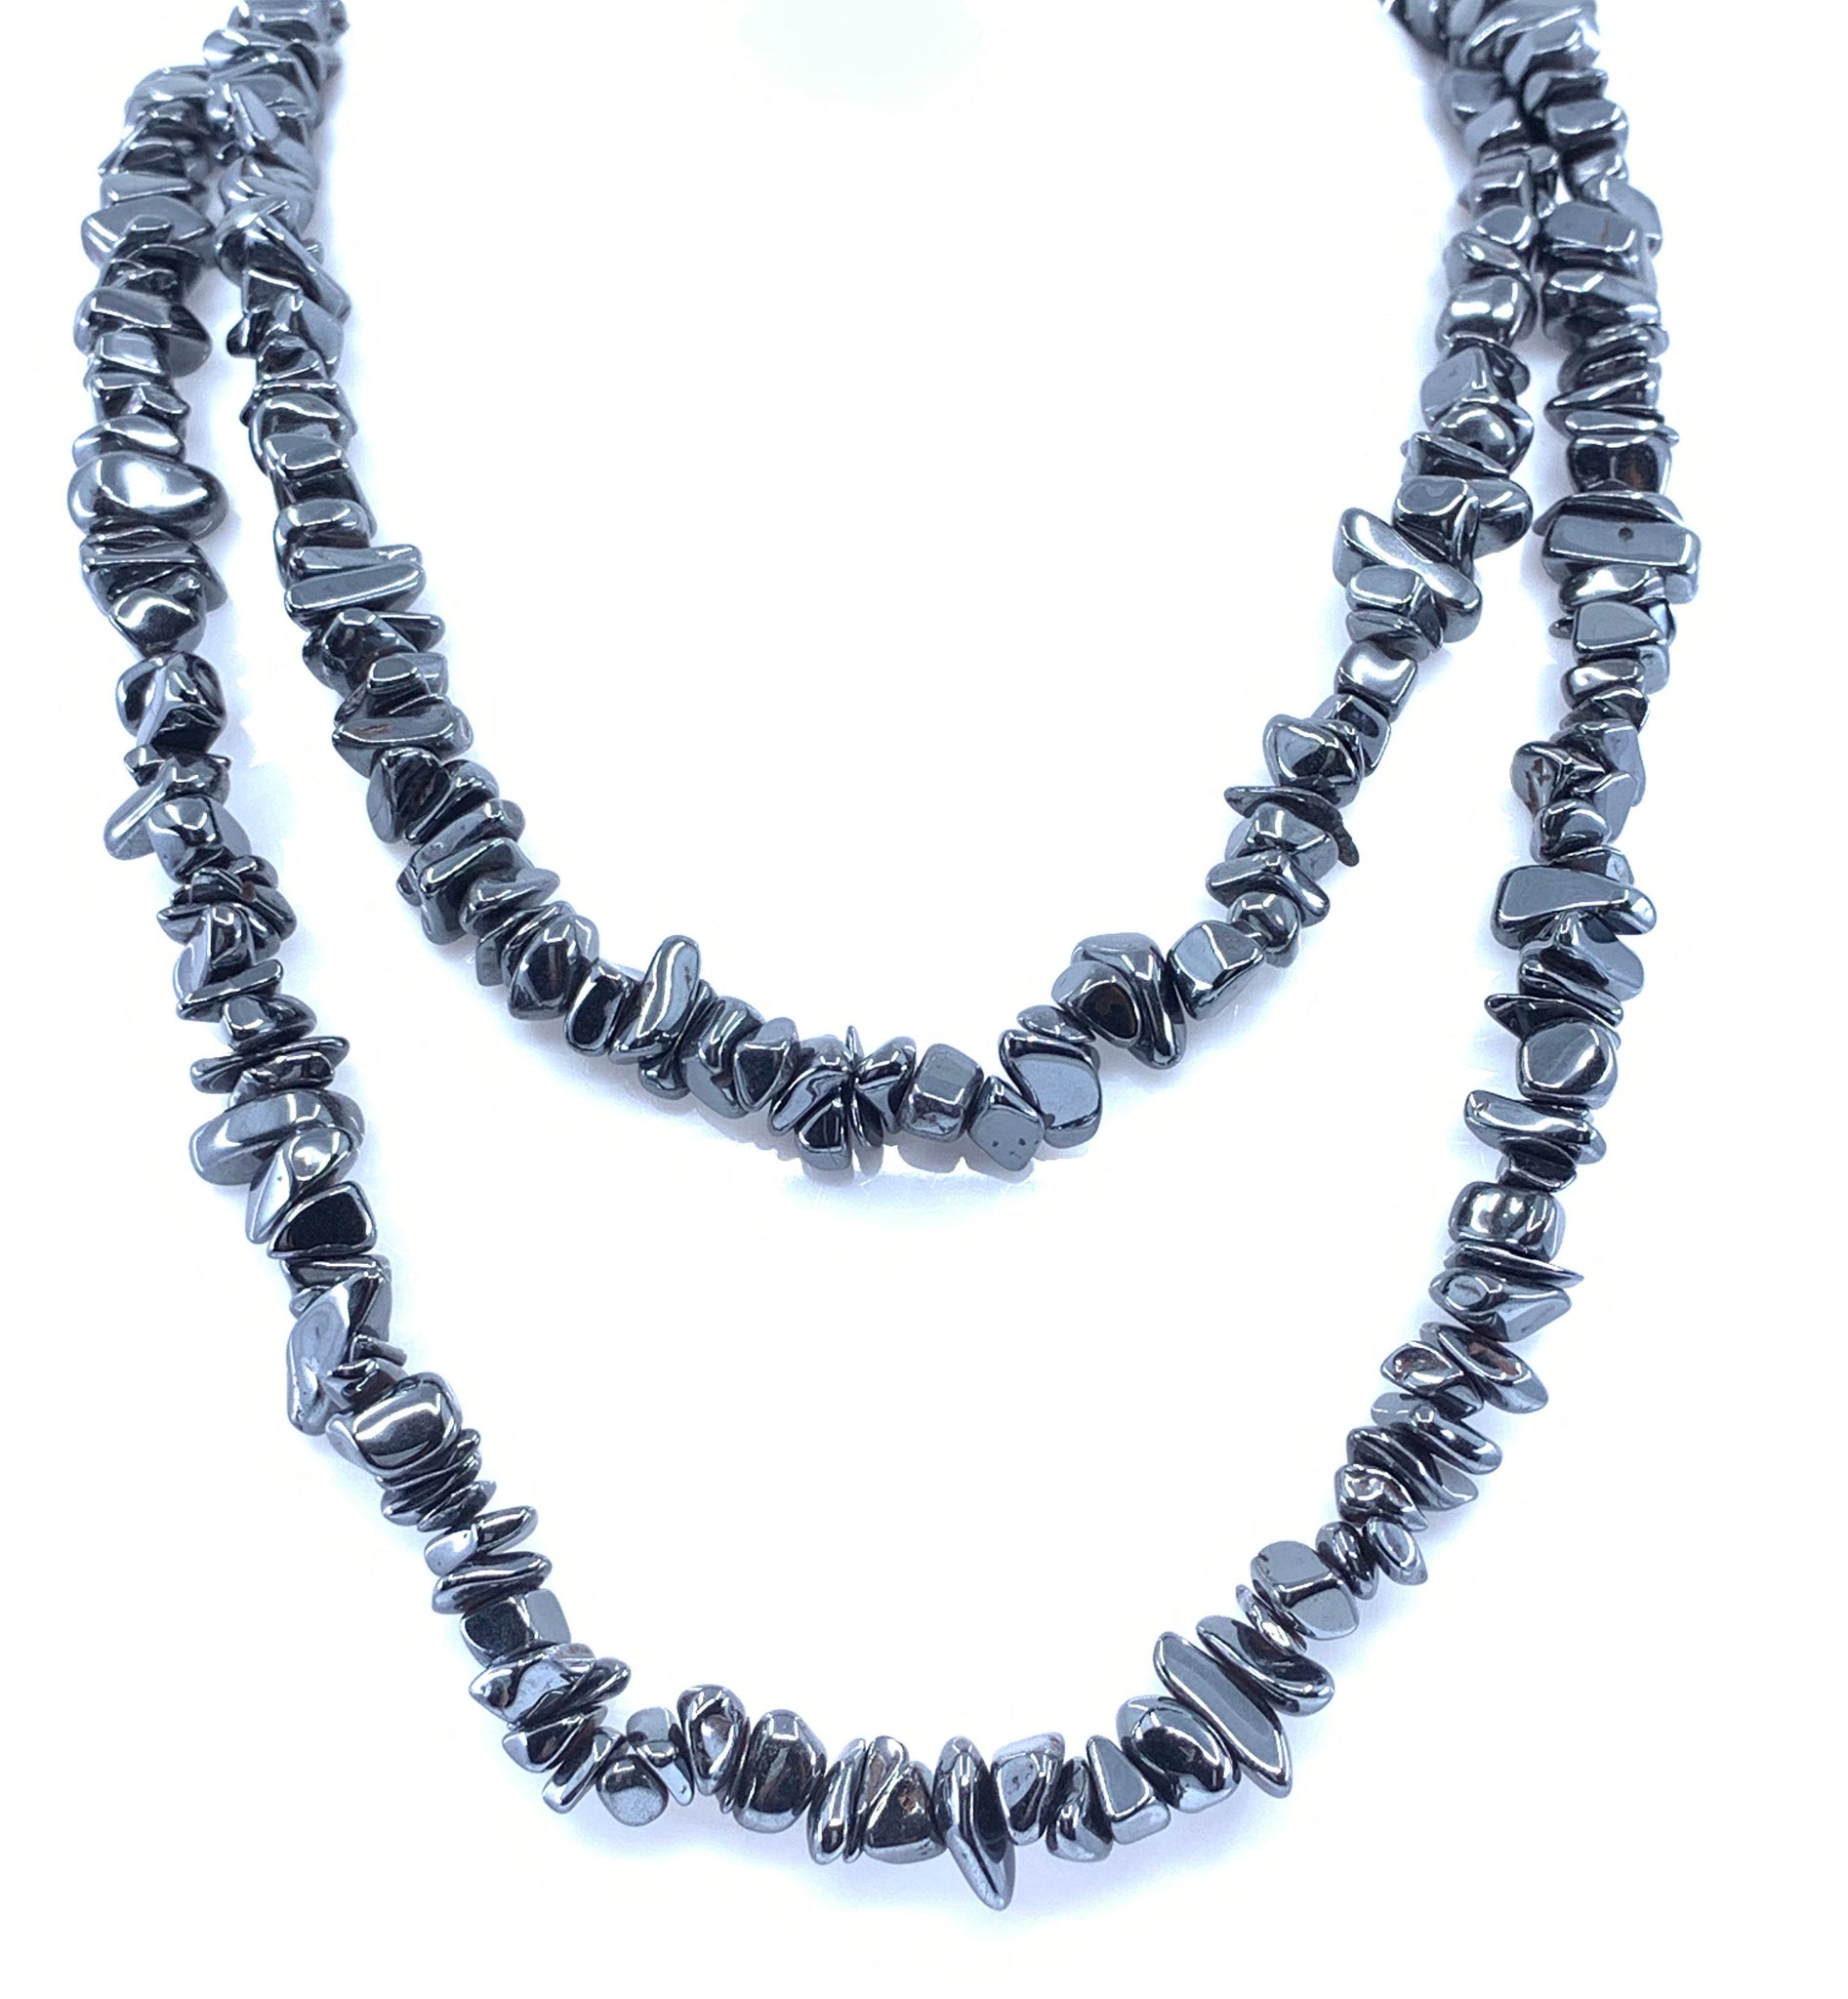 Hematite Gemstone Fashion Design Necklace